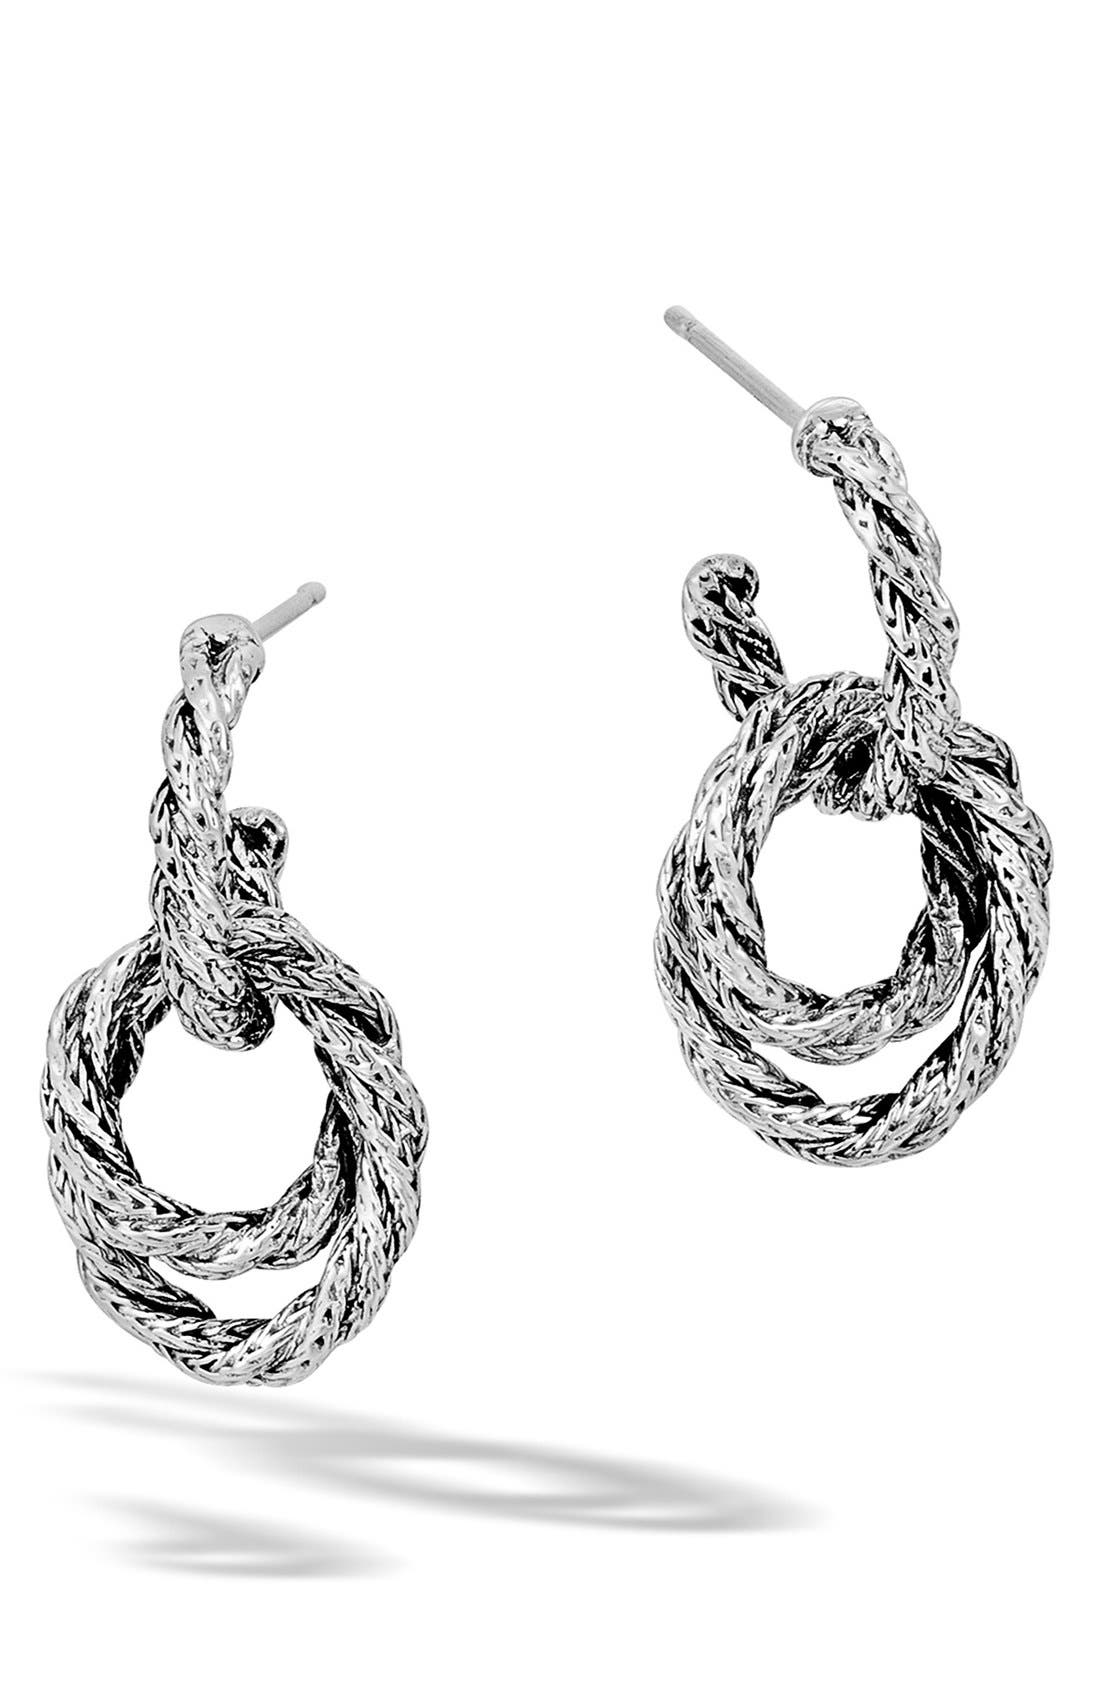 'Classic Chain' Double Twisted Hoop Earrings,                         Main,                         color, Silver